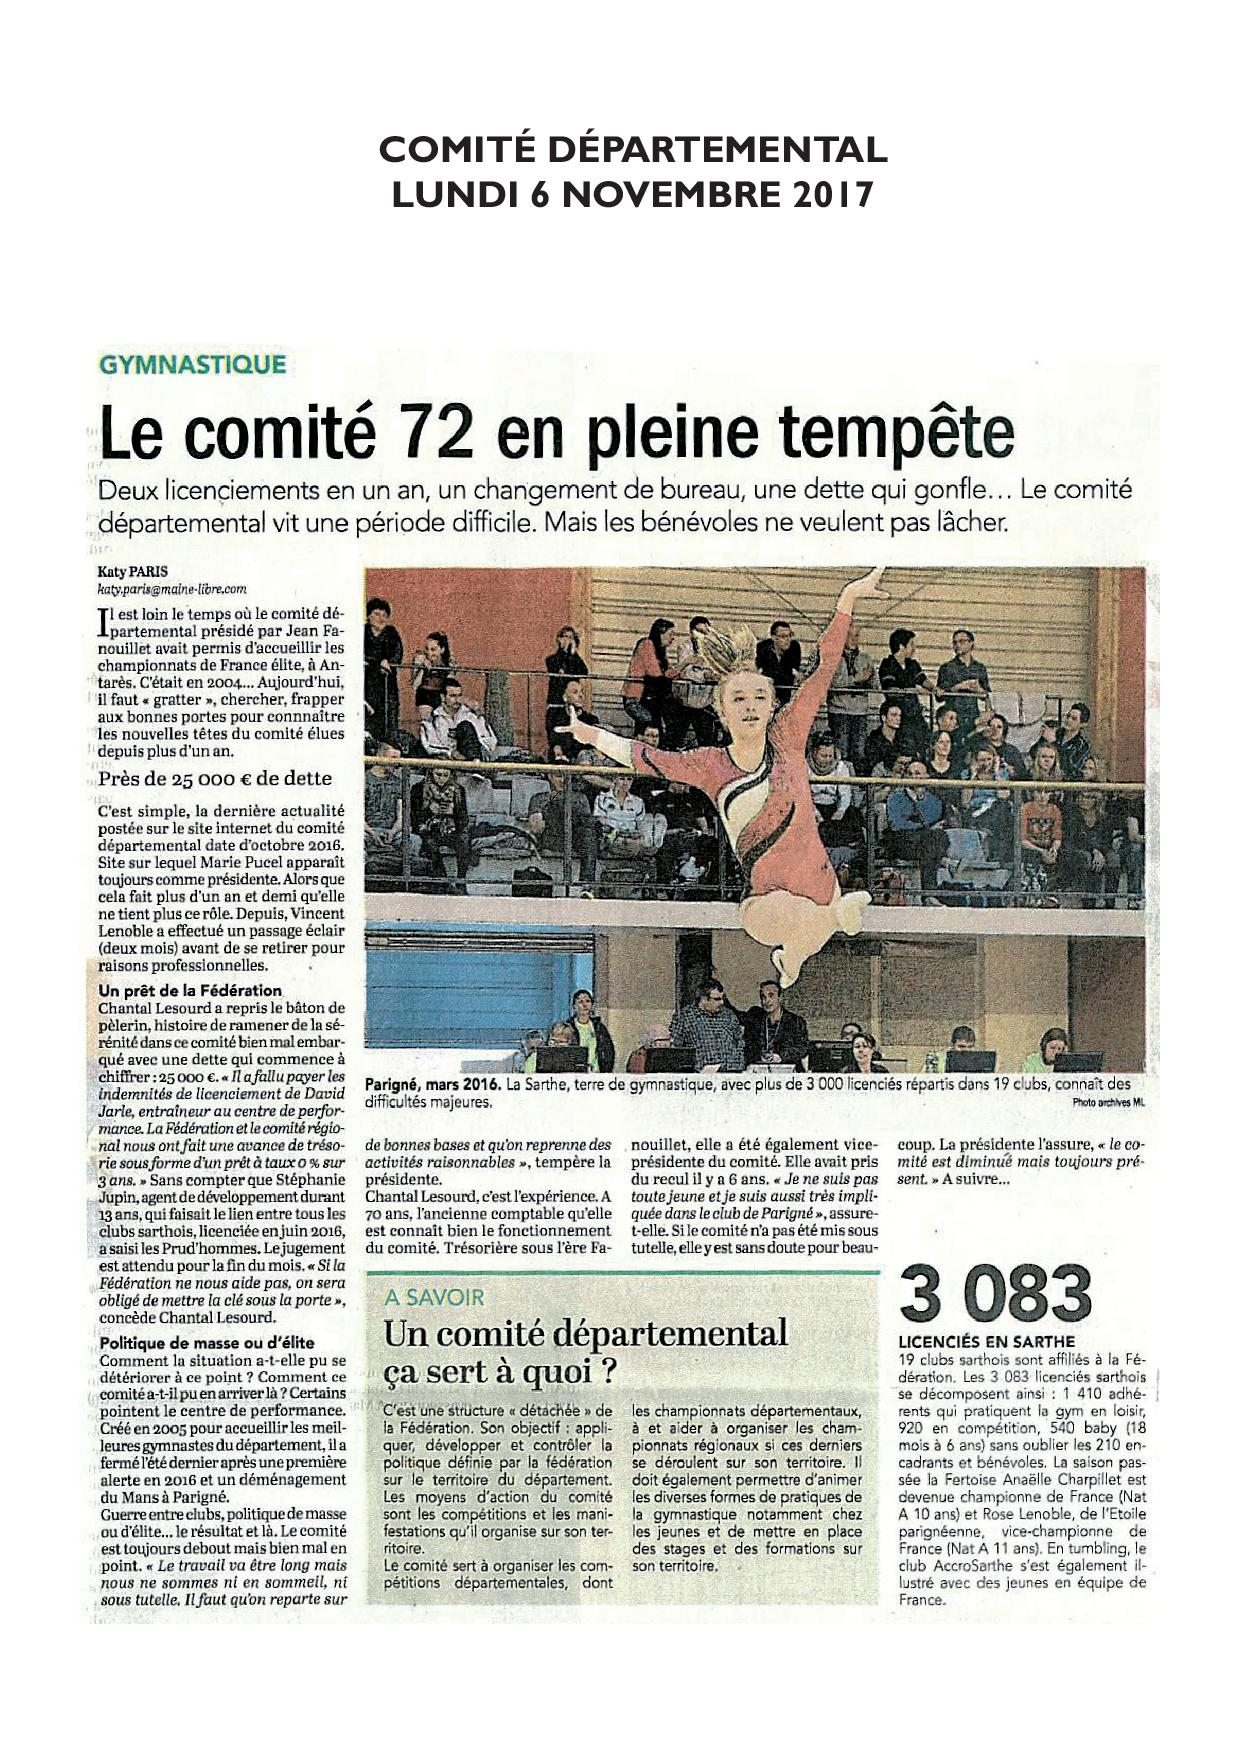 Article Comite Departemental